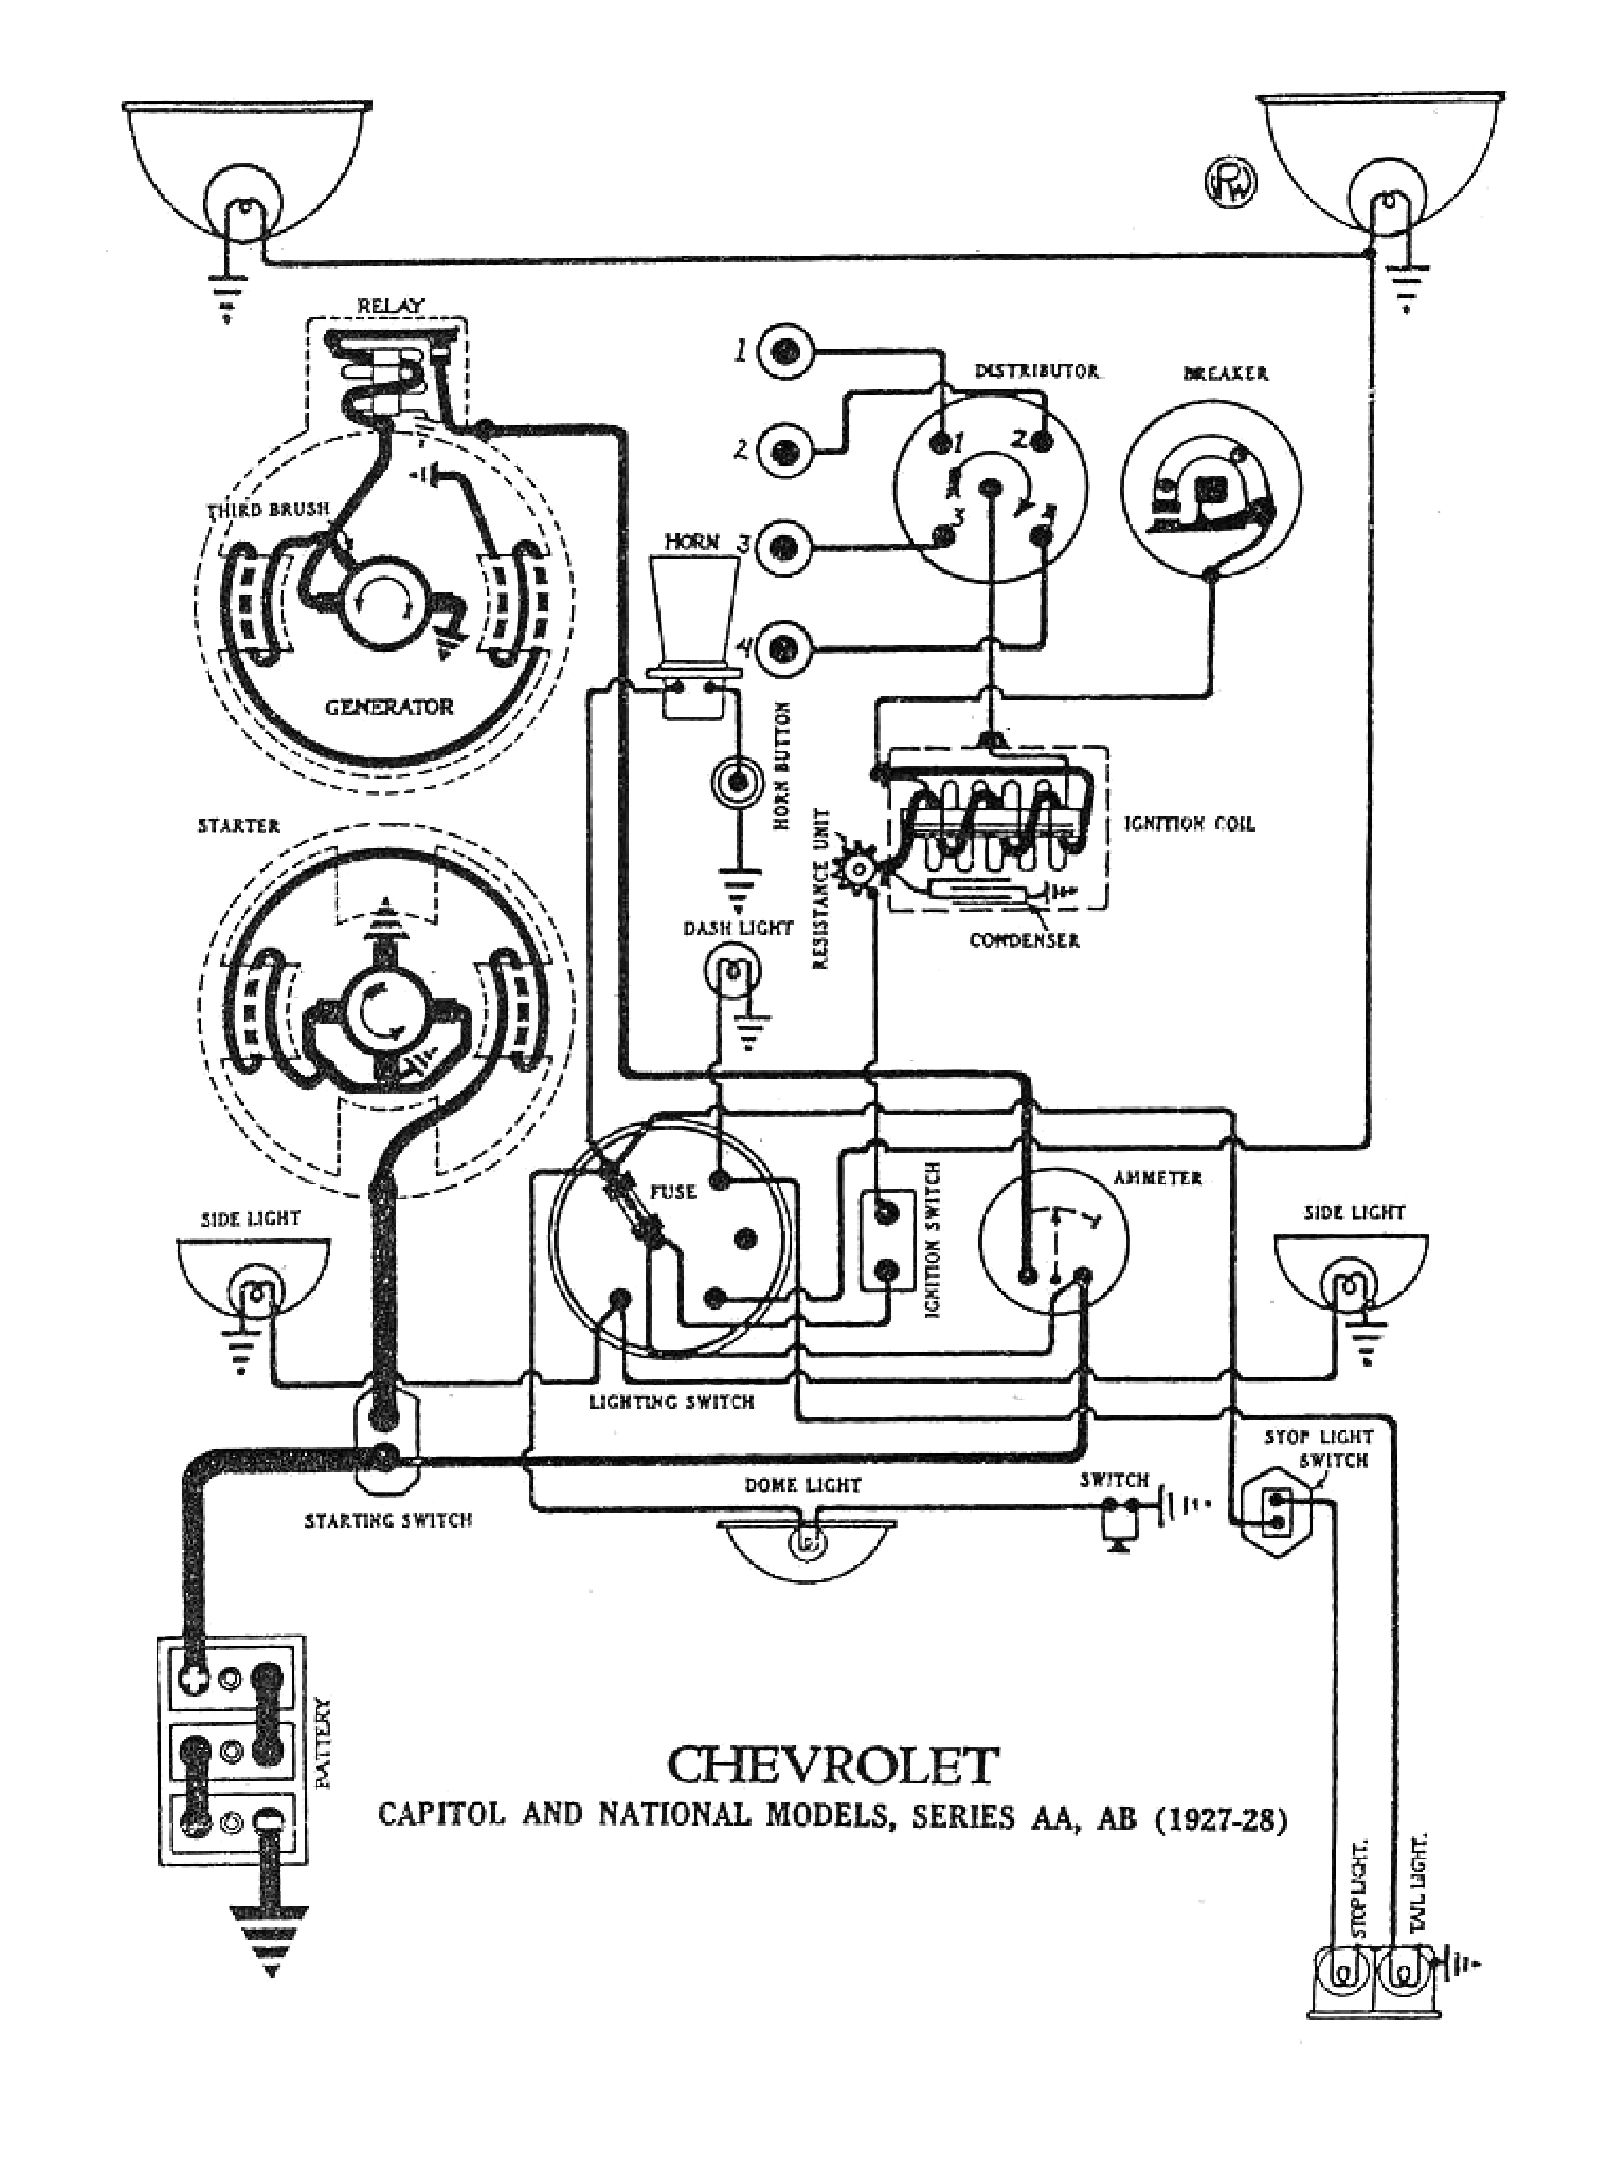 82 Chevy Pickup Wiring Diagram Free Download Library 93 4x4 4l60e Transmission 1927 Buick